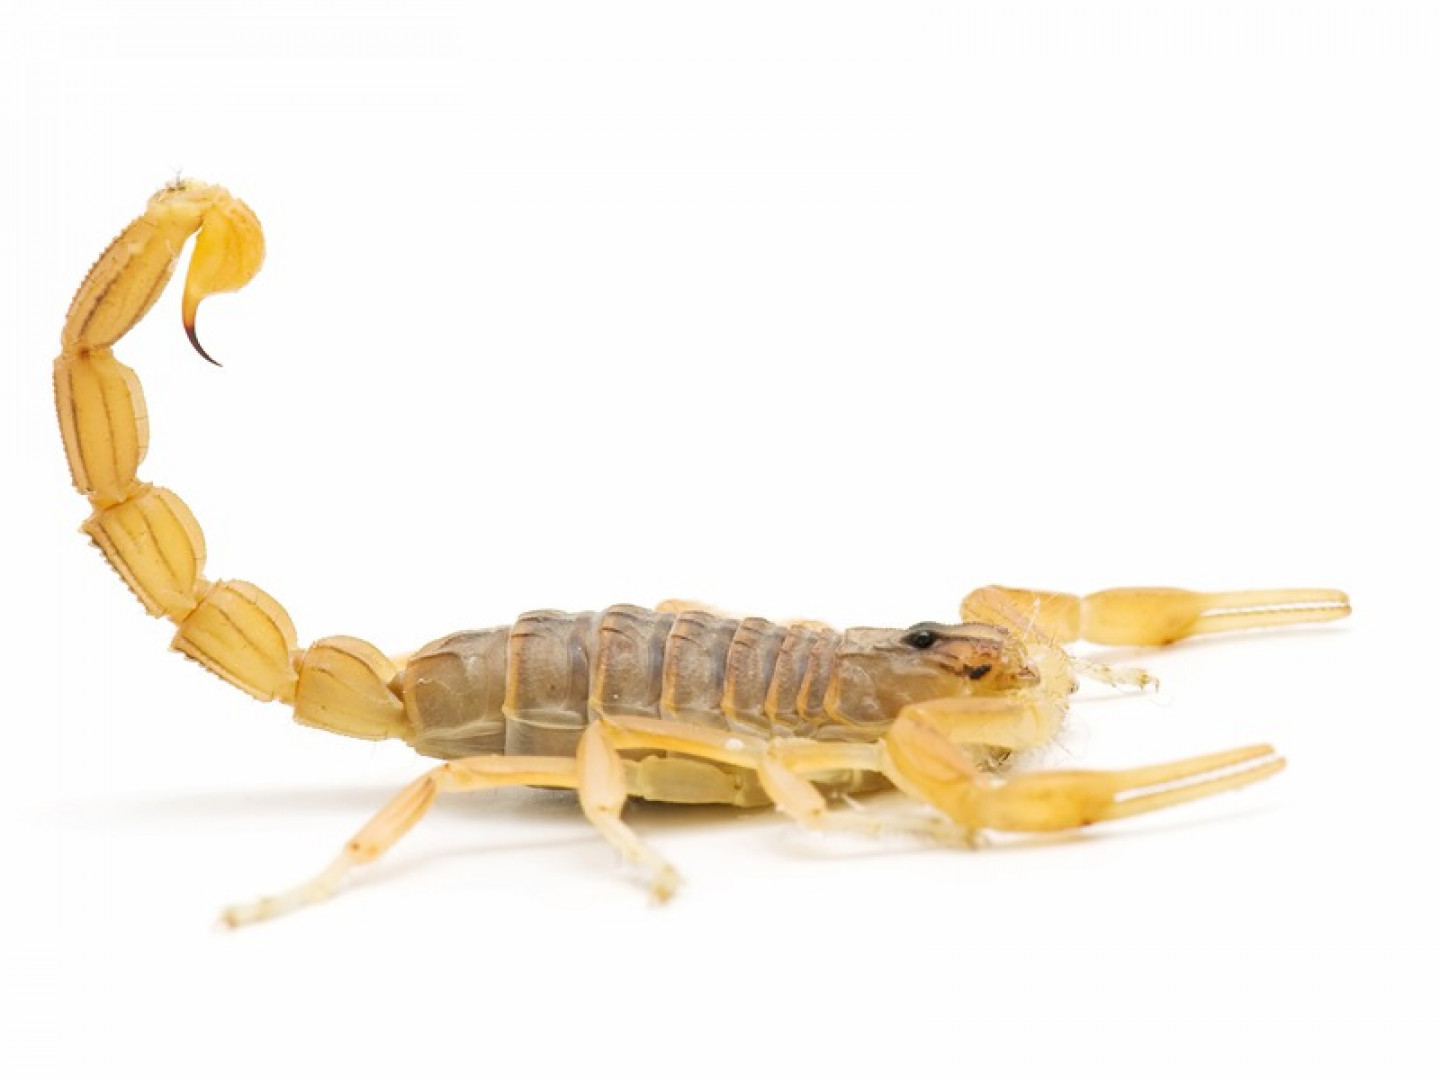 Resolve your residential scorpion problem